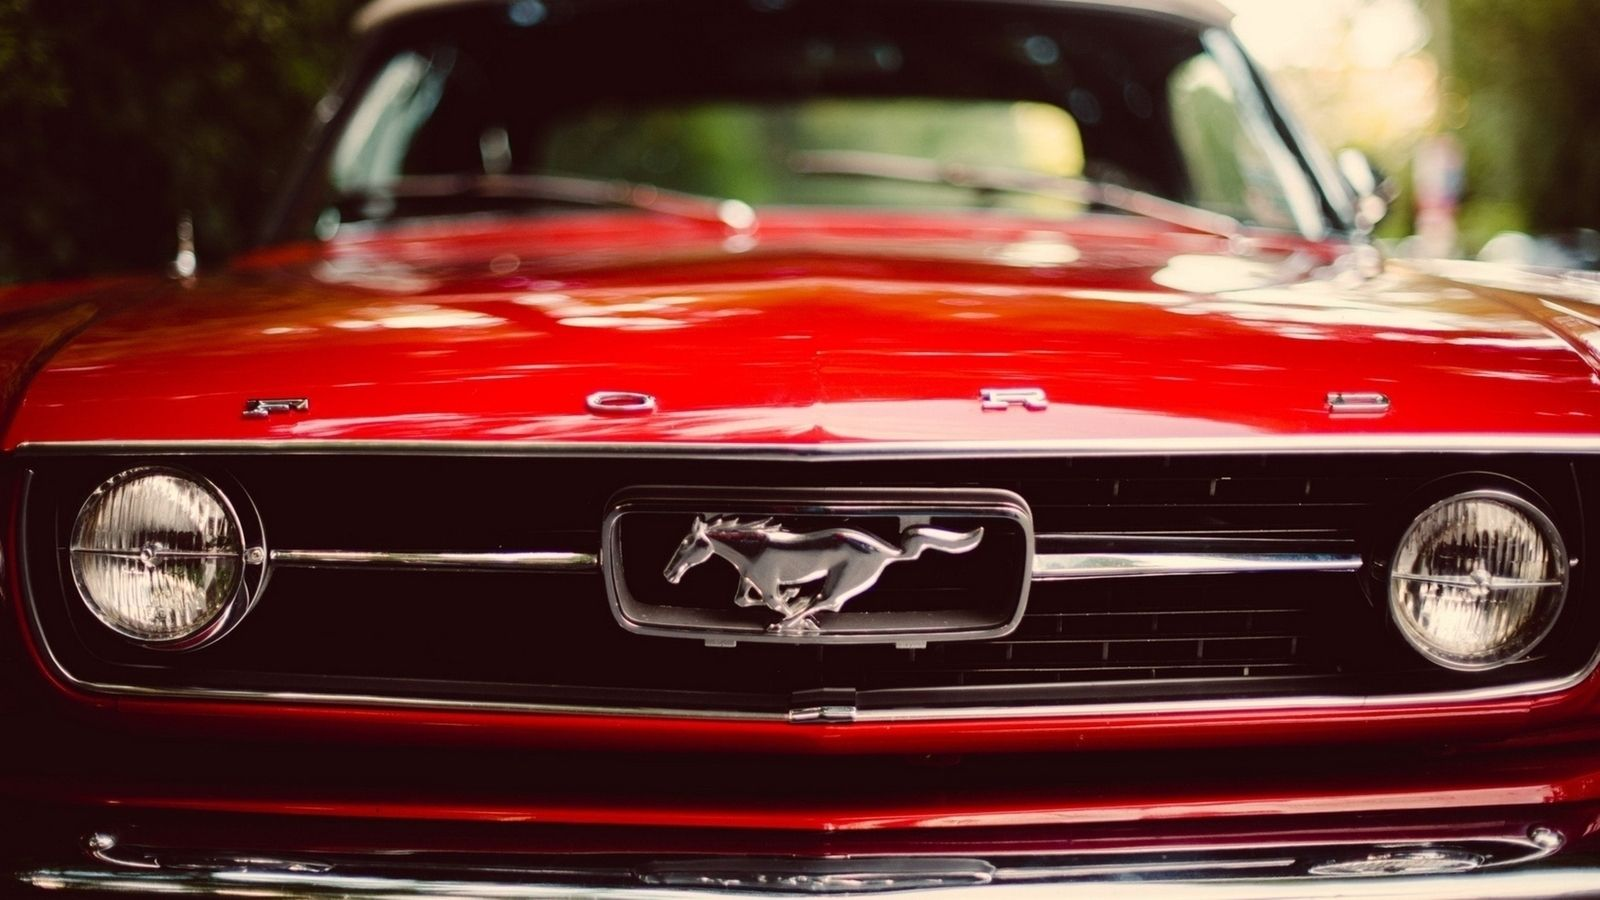 Today in 1964 - Production began on the first @Ford #Mustang. Which muscle #car would you like to own the keys to? #SSLLC